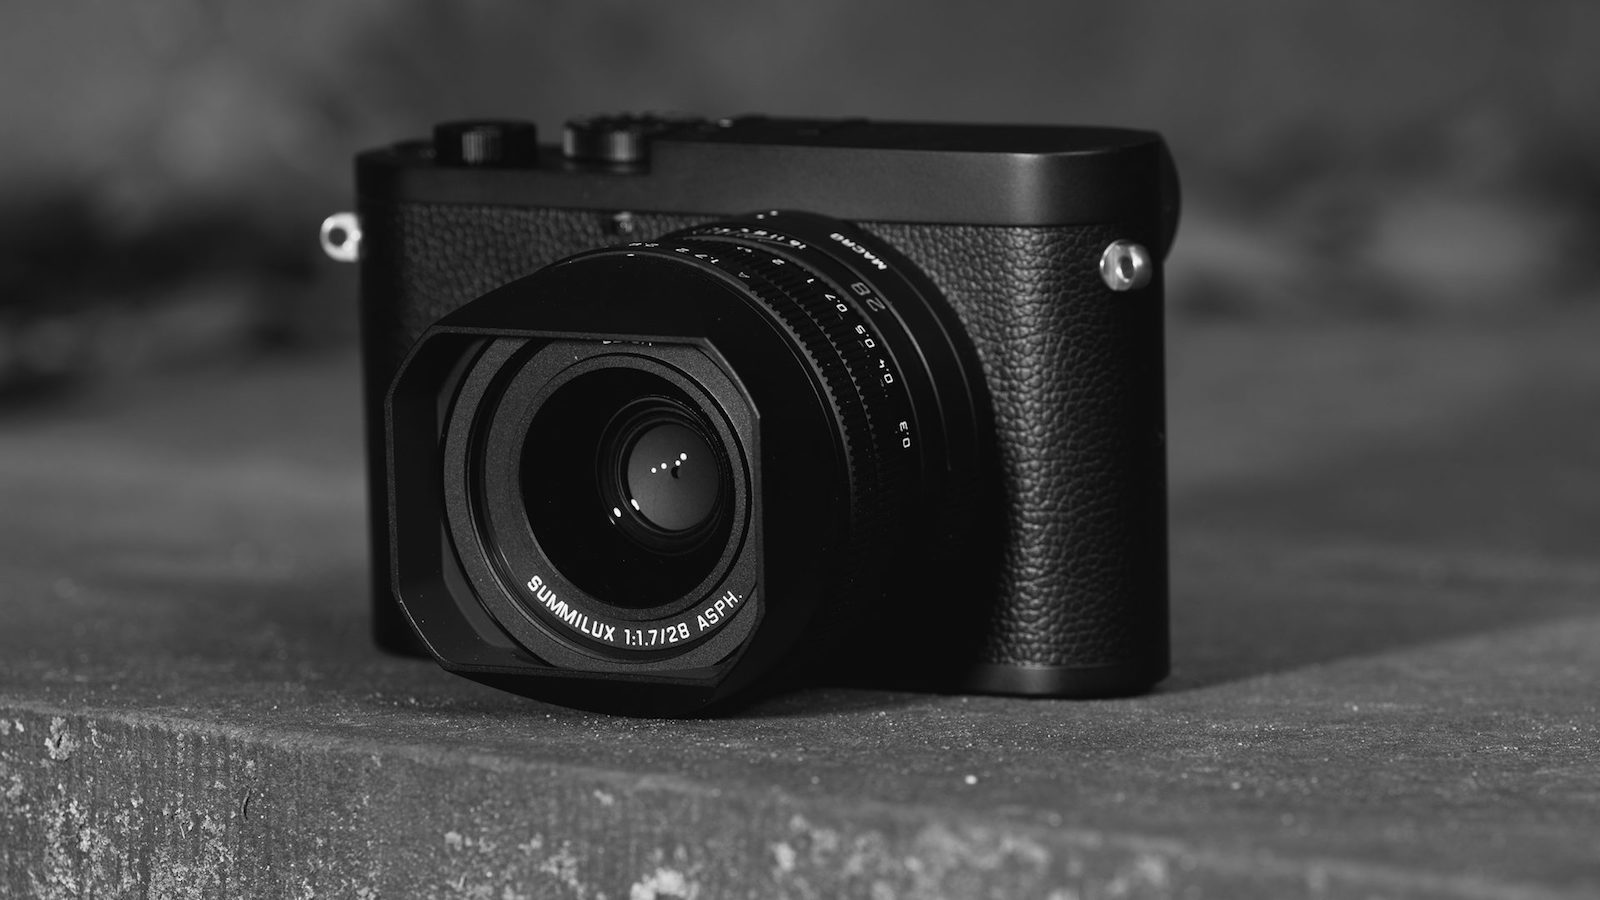 Leica Q2 Monochrom full-frame digital compact camera focuses only on black & white images